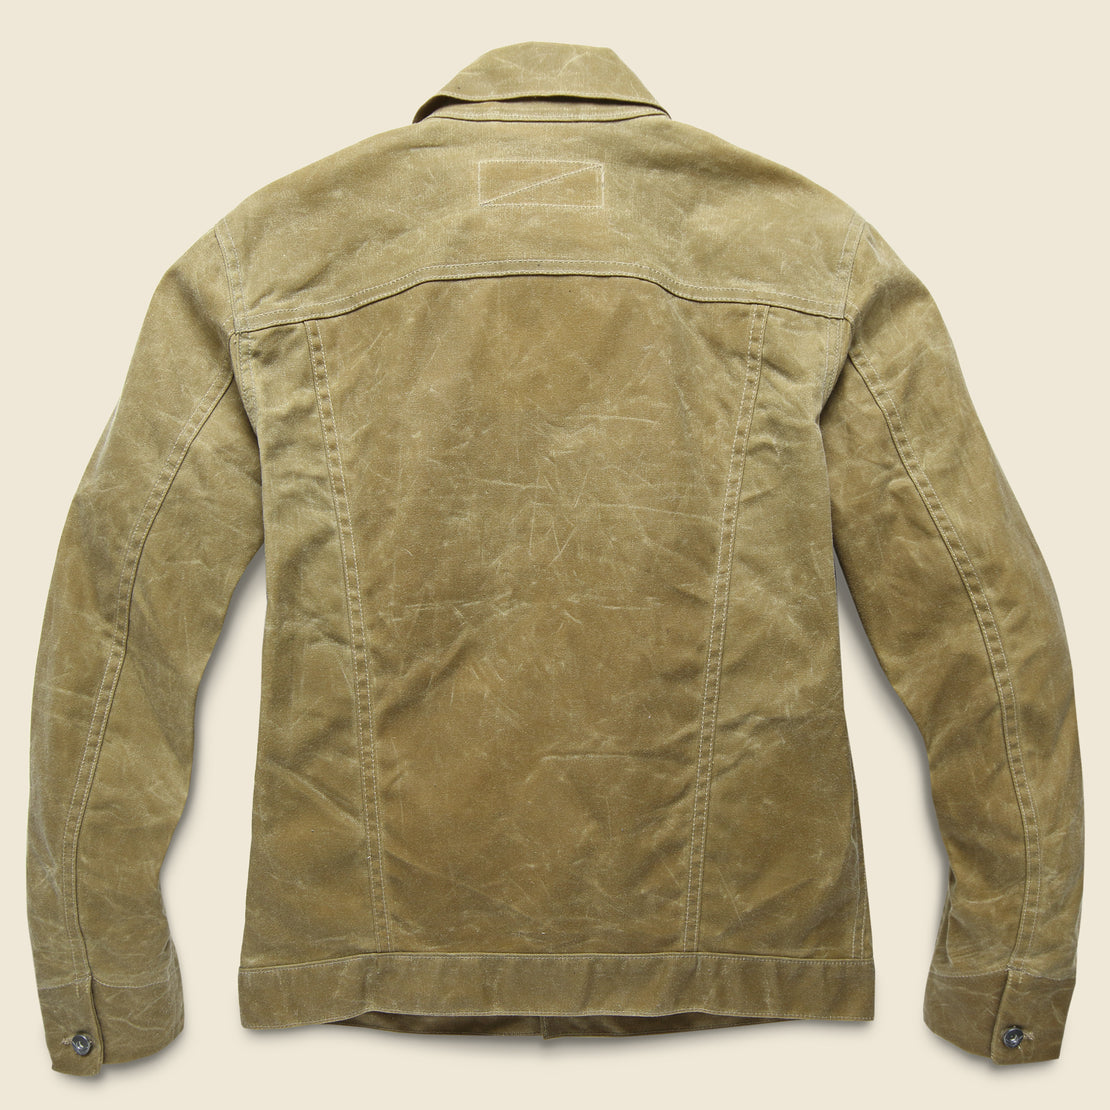 Waxed Ridgeline Supply Jacket - Tan